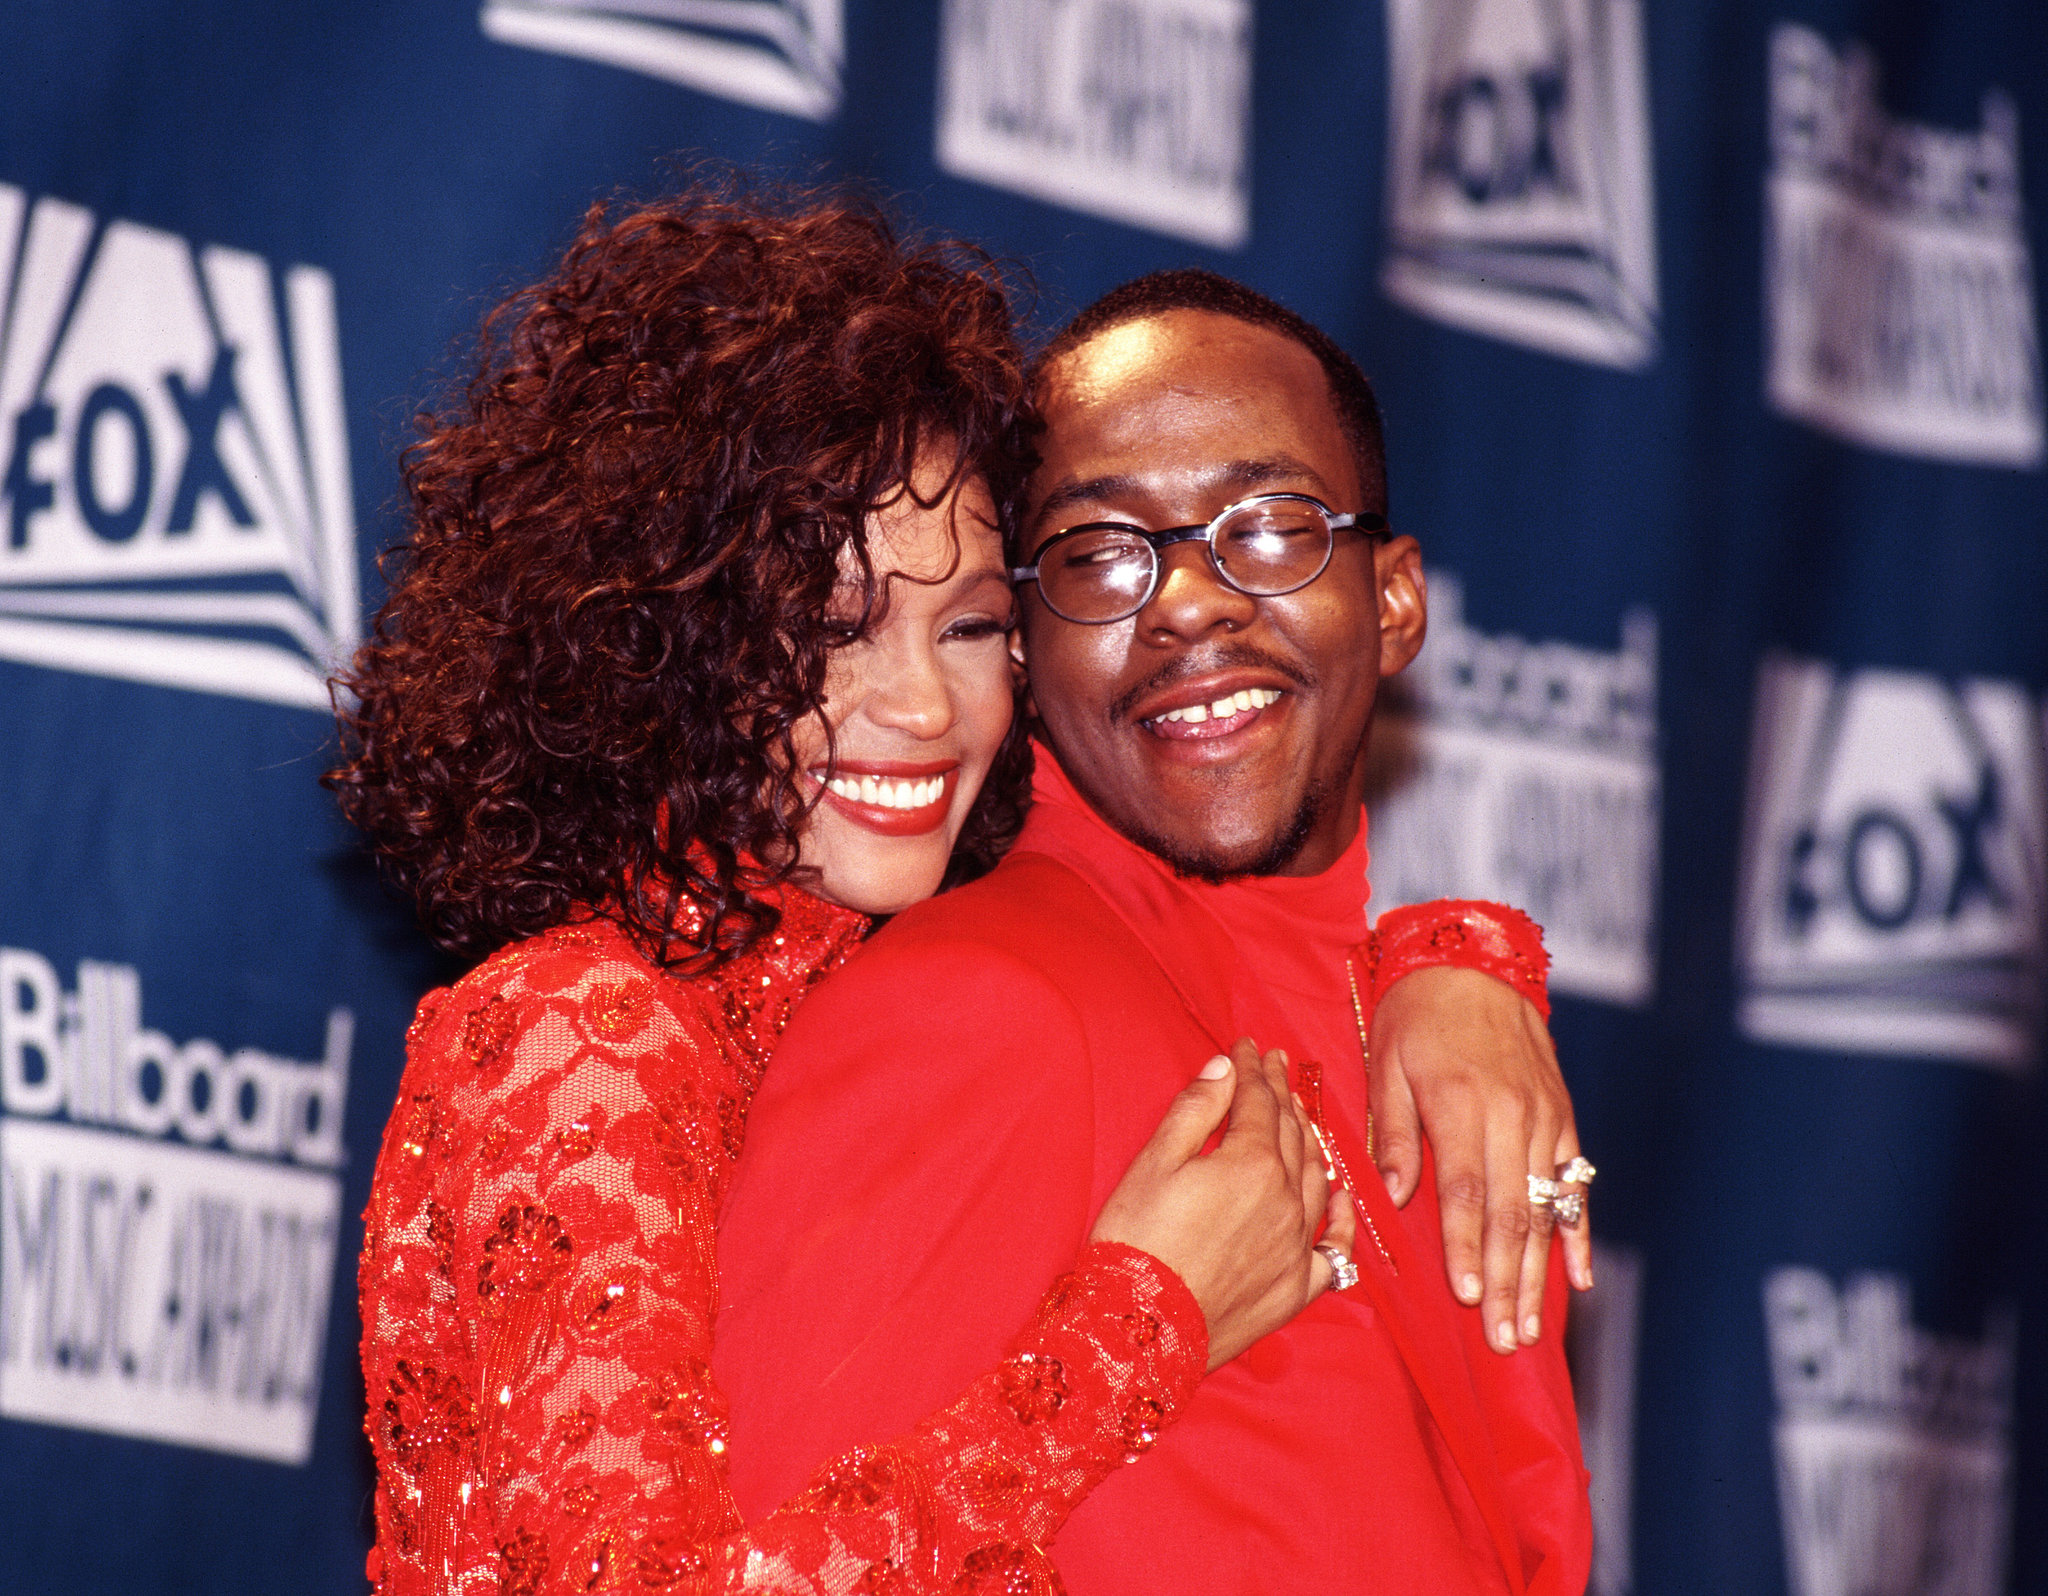 Whitney Houston and Bobby Brown snuggled up backstage in December 1993 for the Billboard Music Awards.